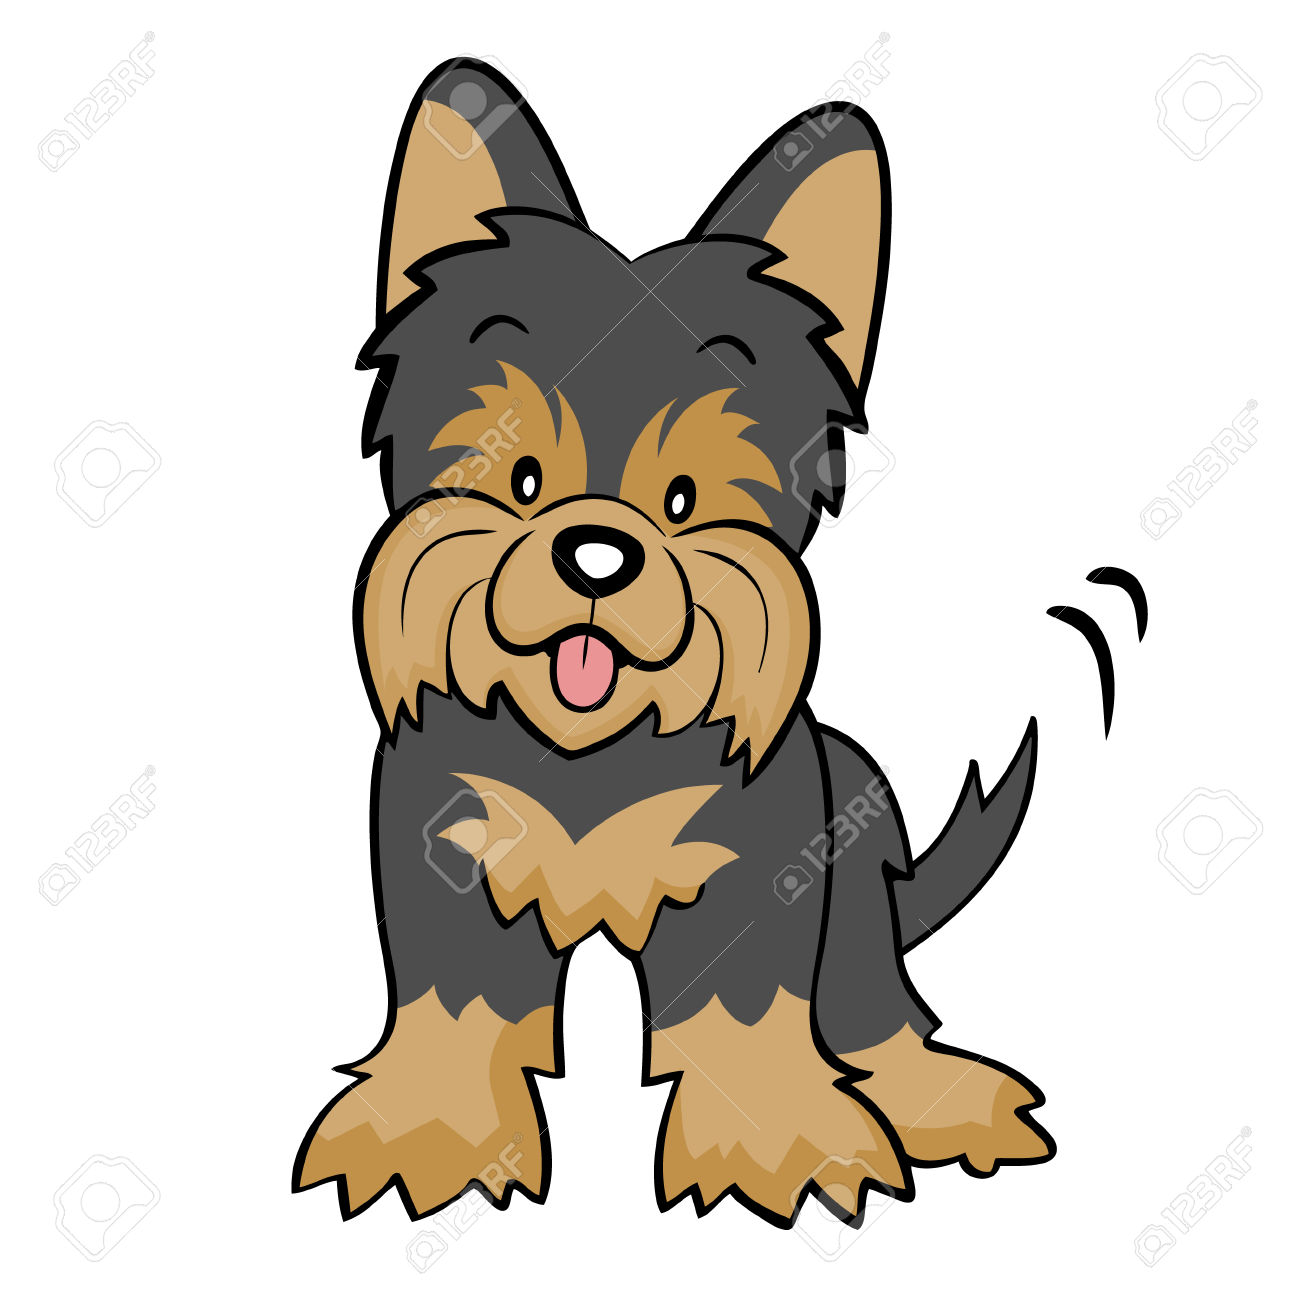 Golddust yorkshire terrier clipart.